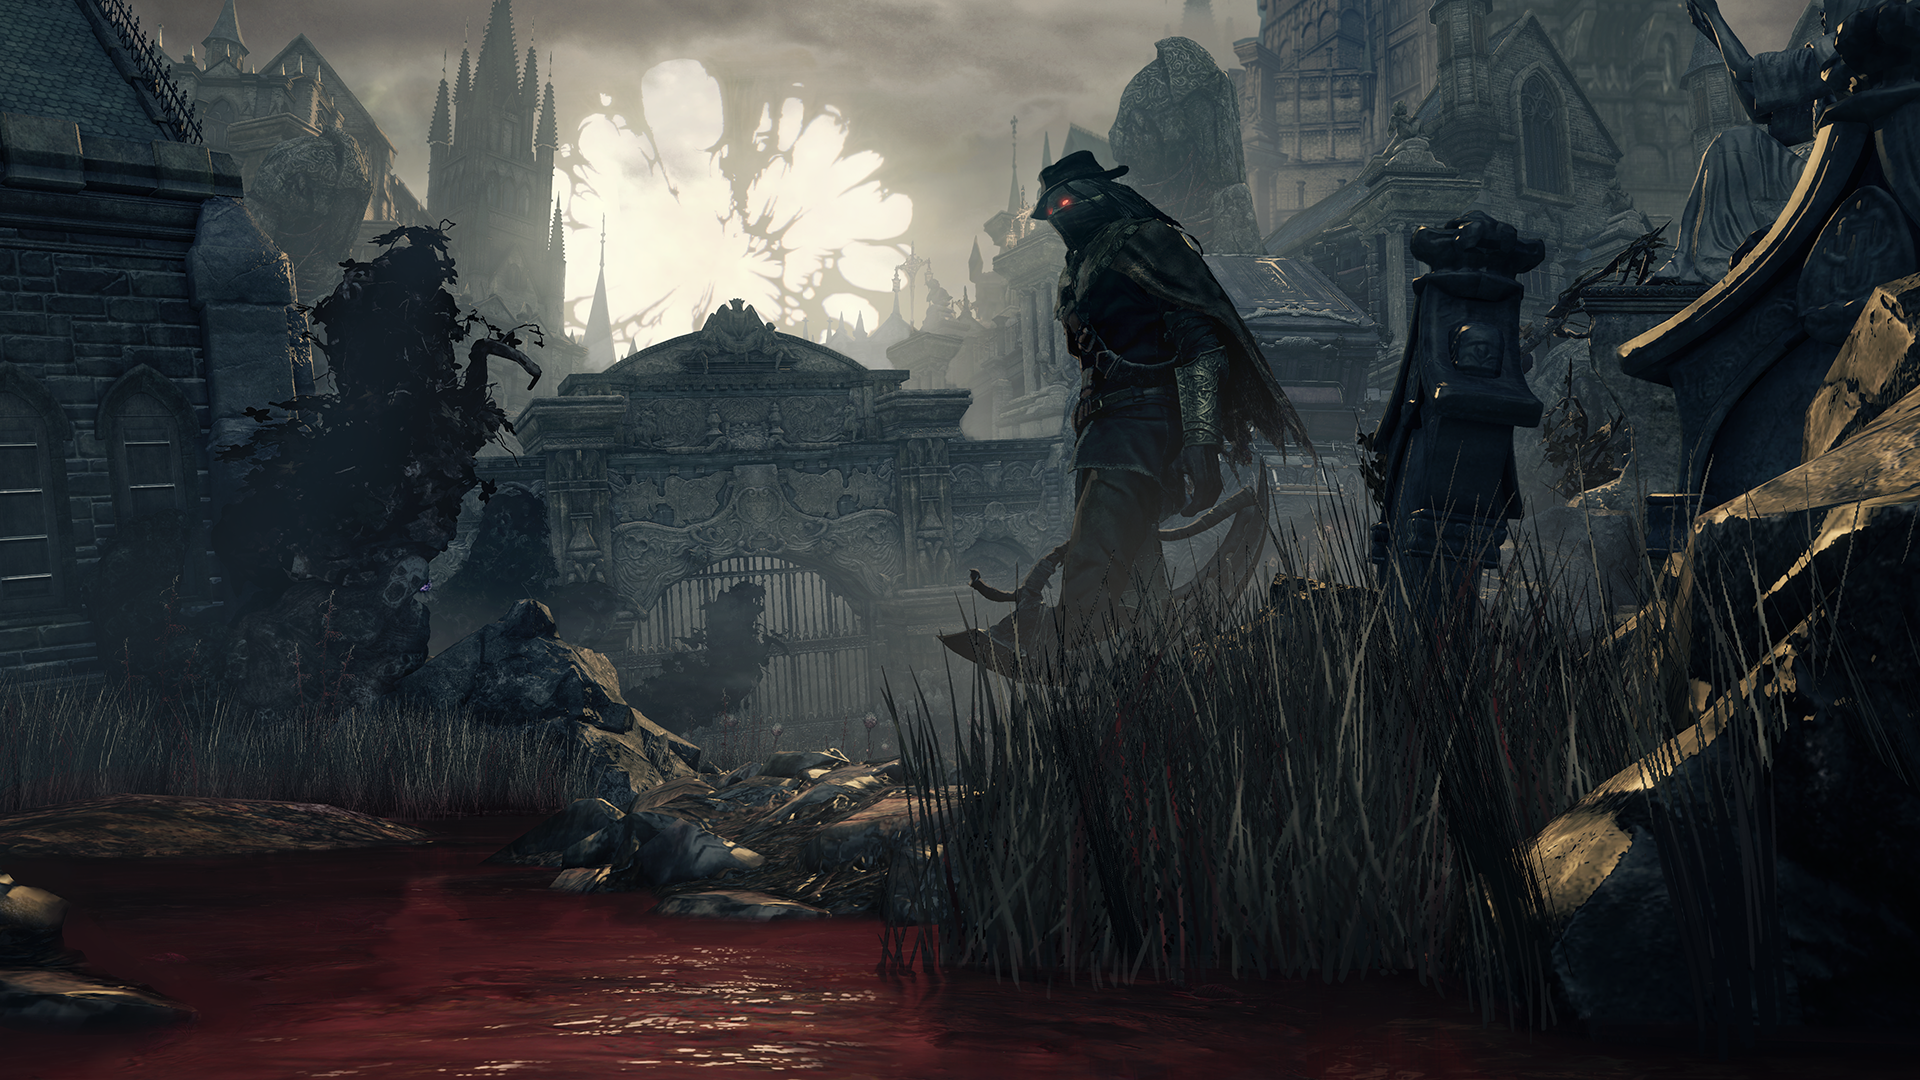 Bloodborne Servers Back Online After Unexplained Downtime